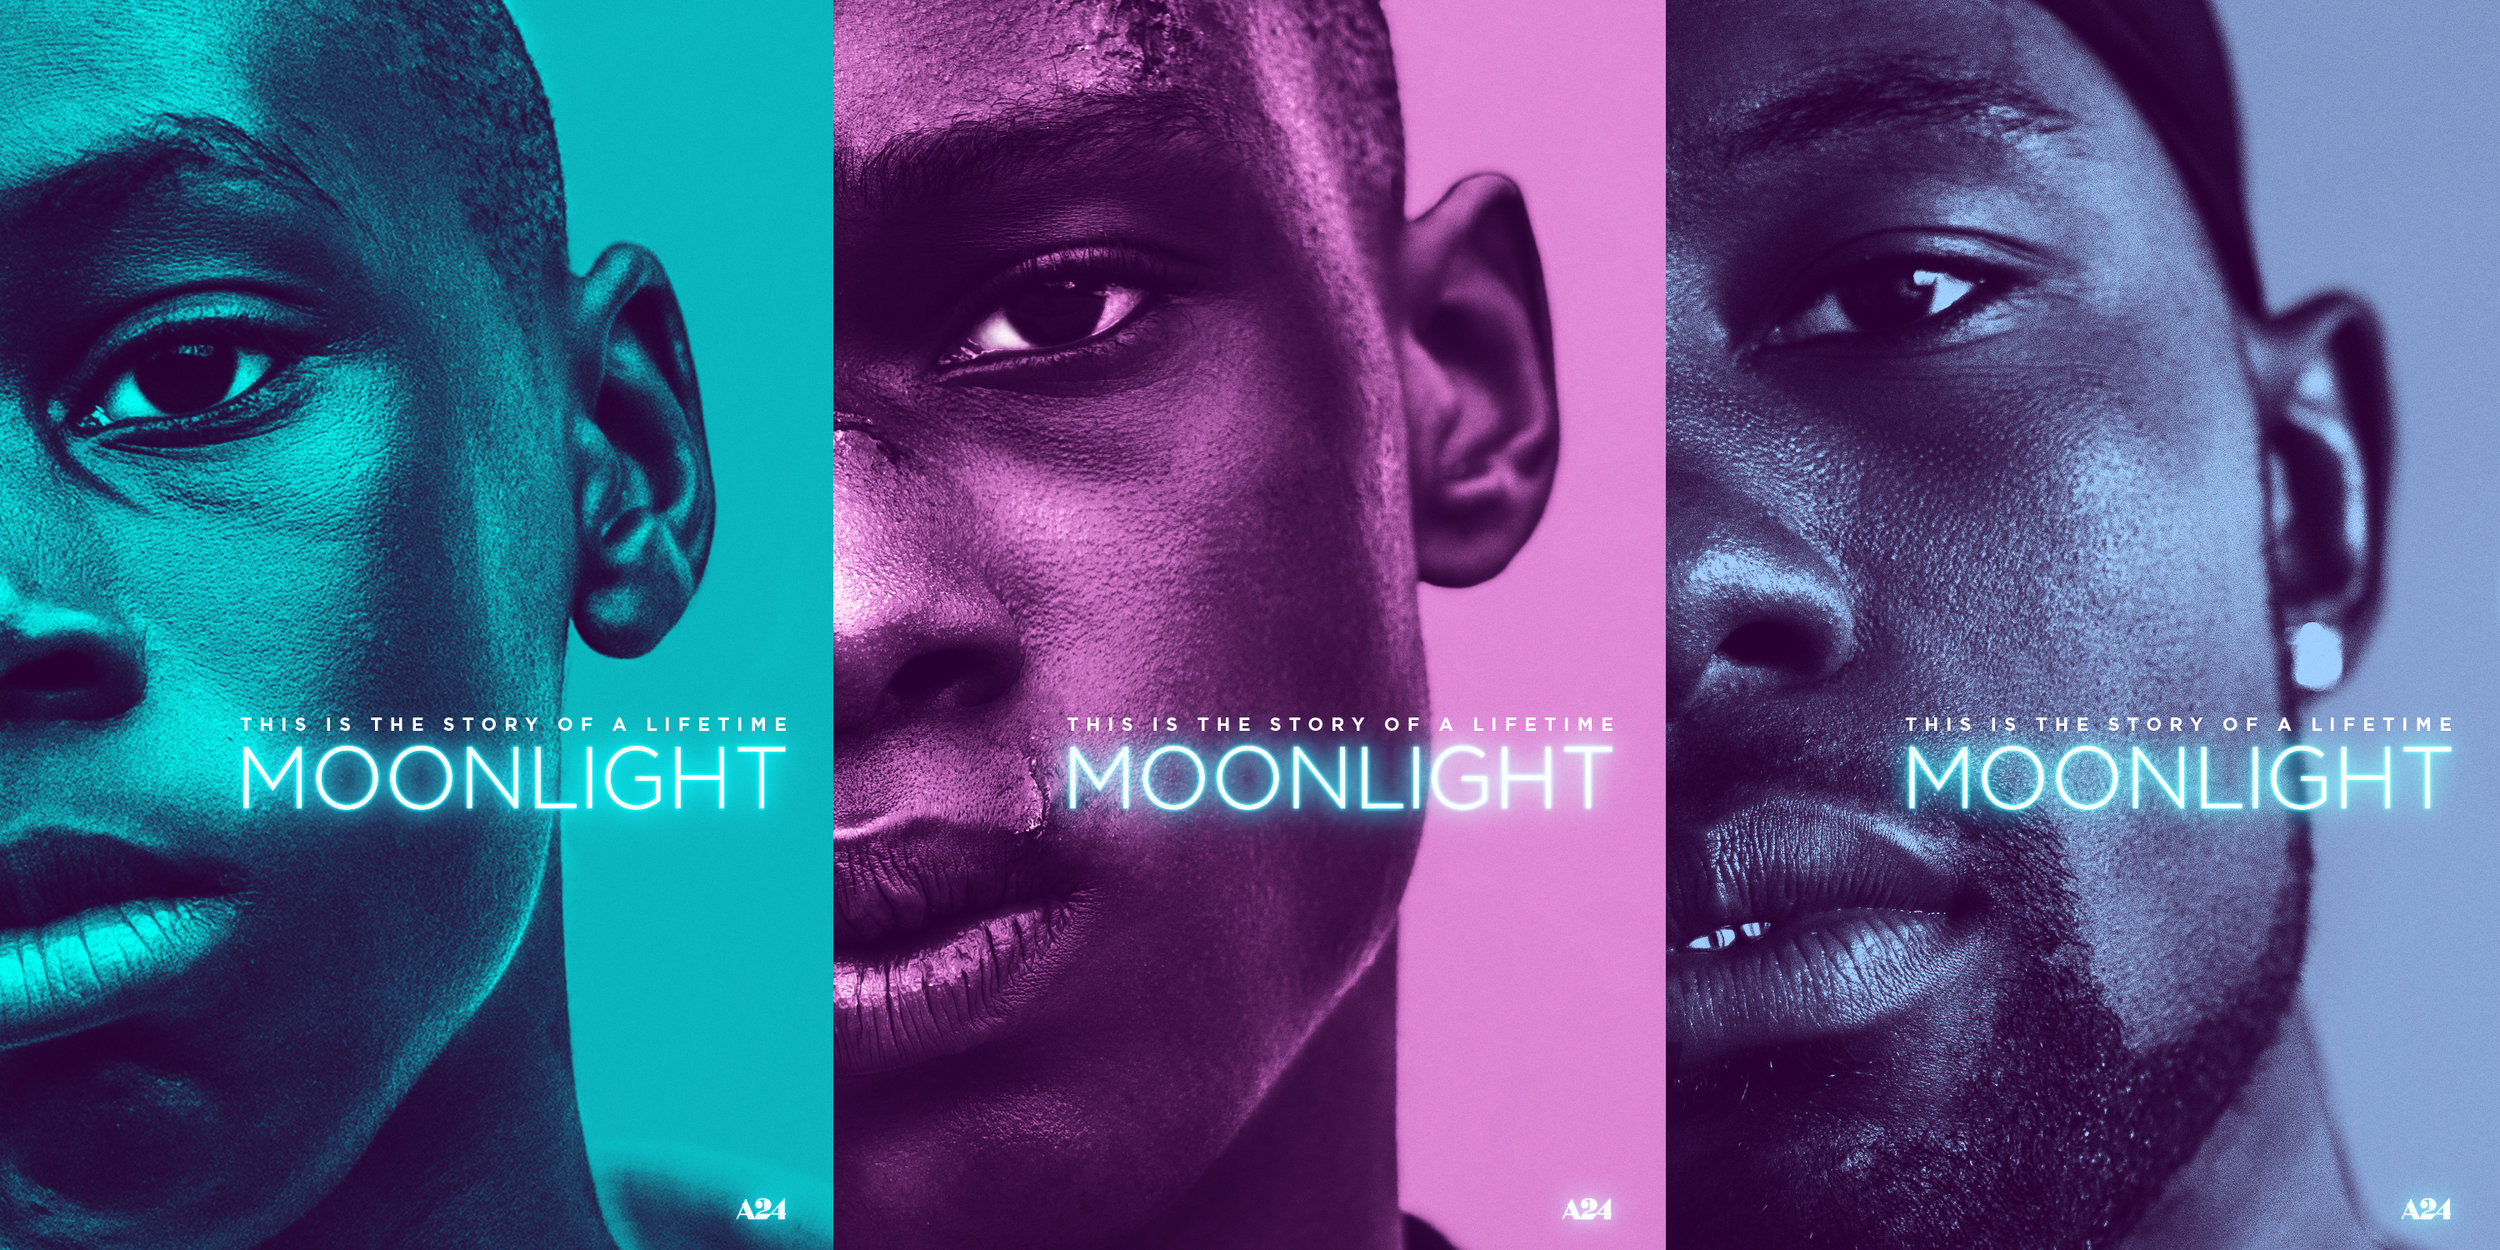 moonlight-teaser-poster.jpg